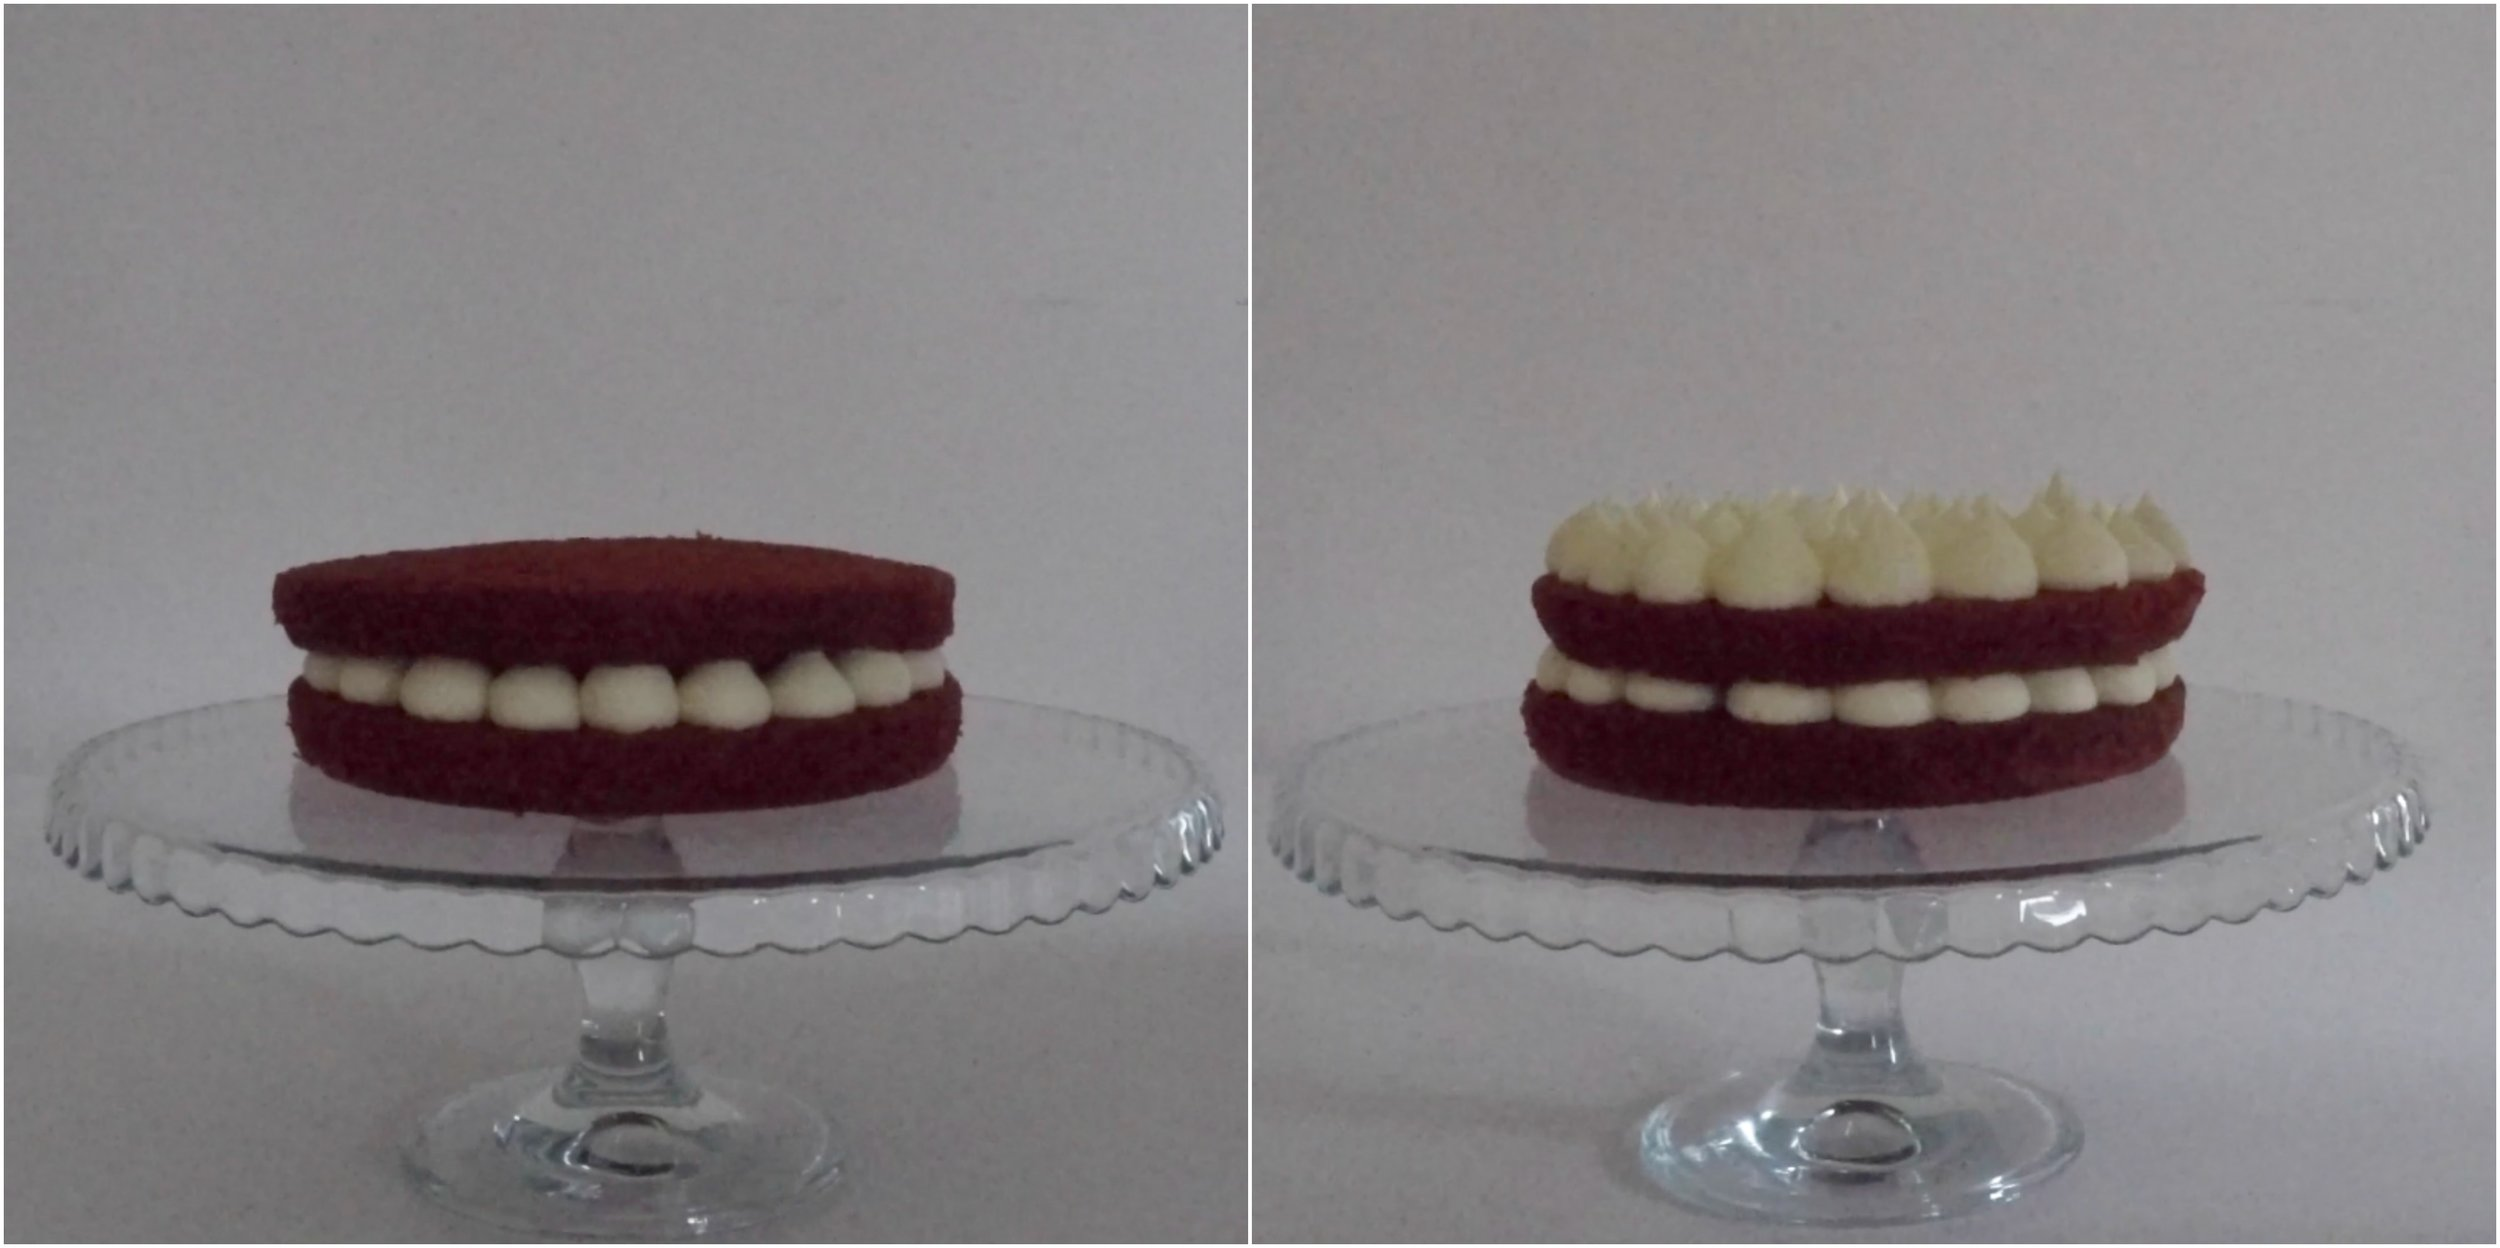 Red Velvet Cake filled with Cream Cheese Frosting